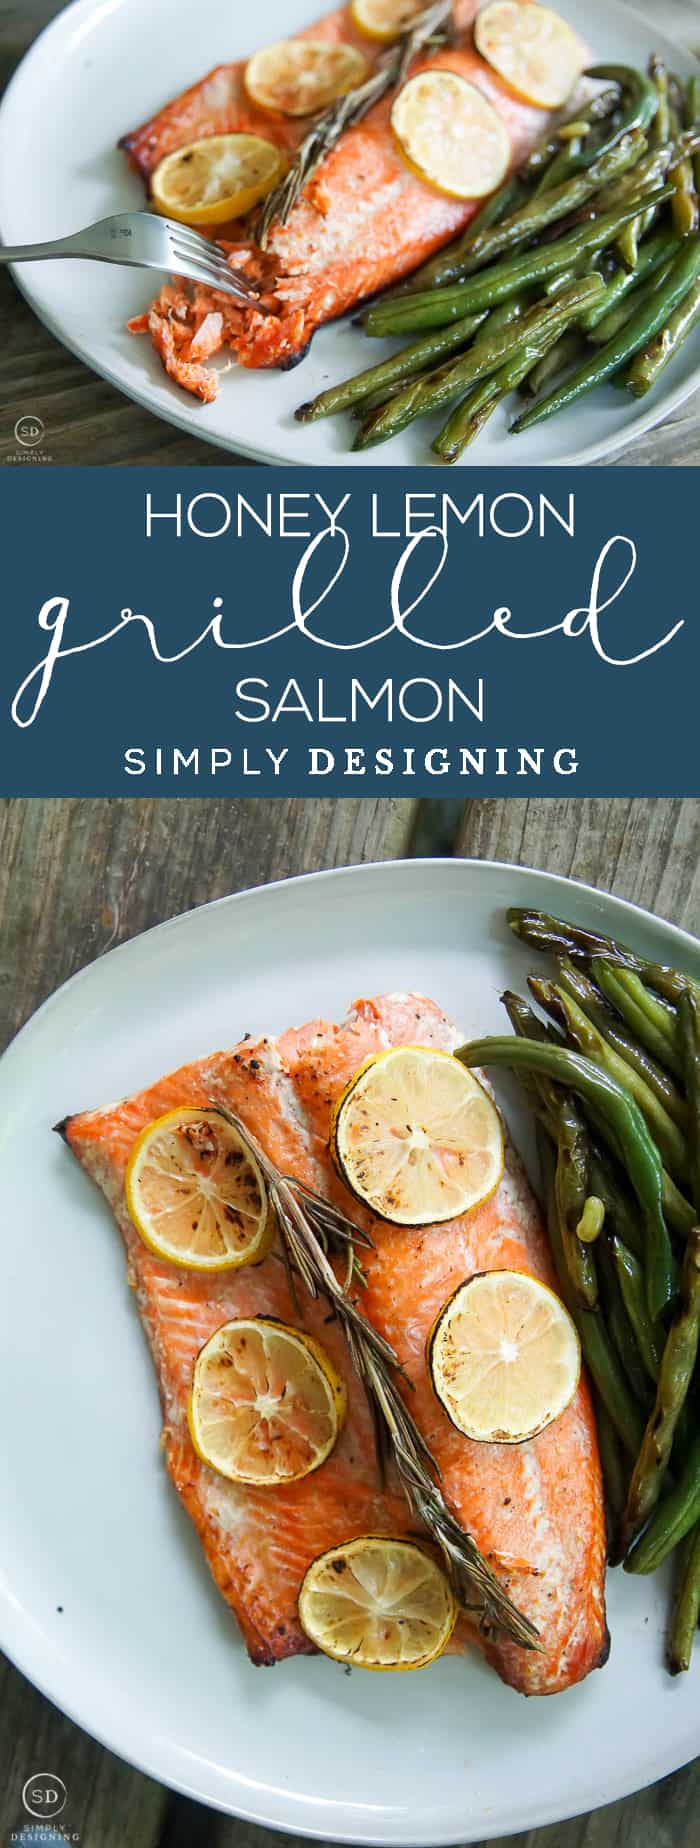 This honey lemon grilled salmon recipe is the perfect recipe to make salmon in foil with a delicious glaze recipe